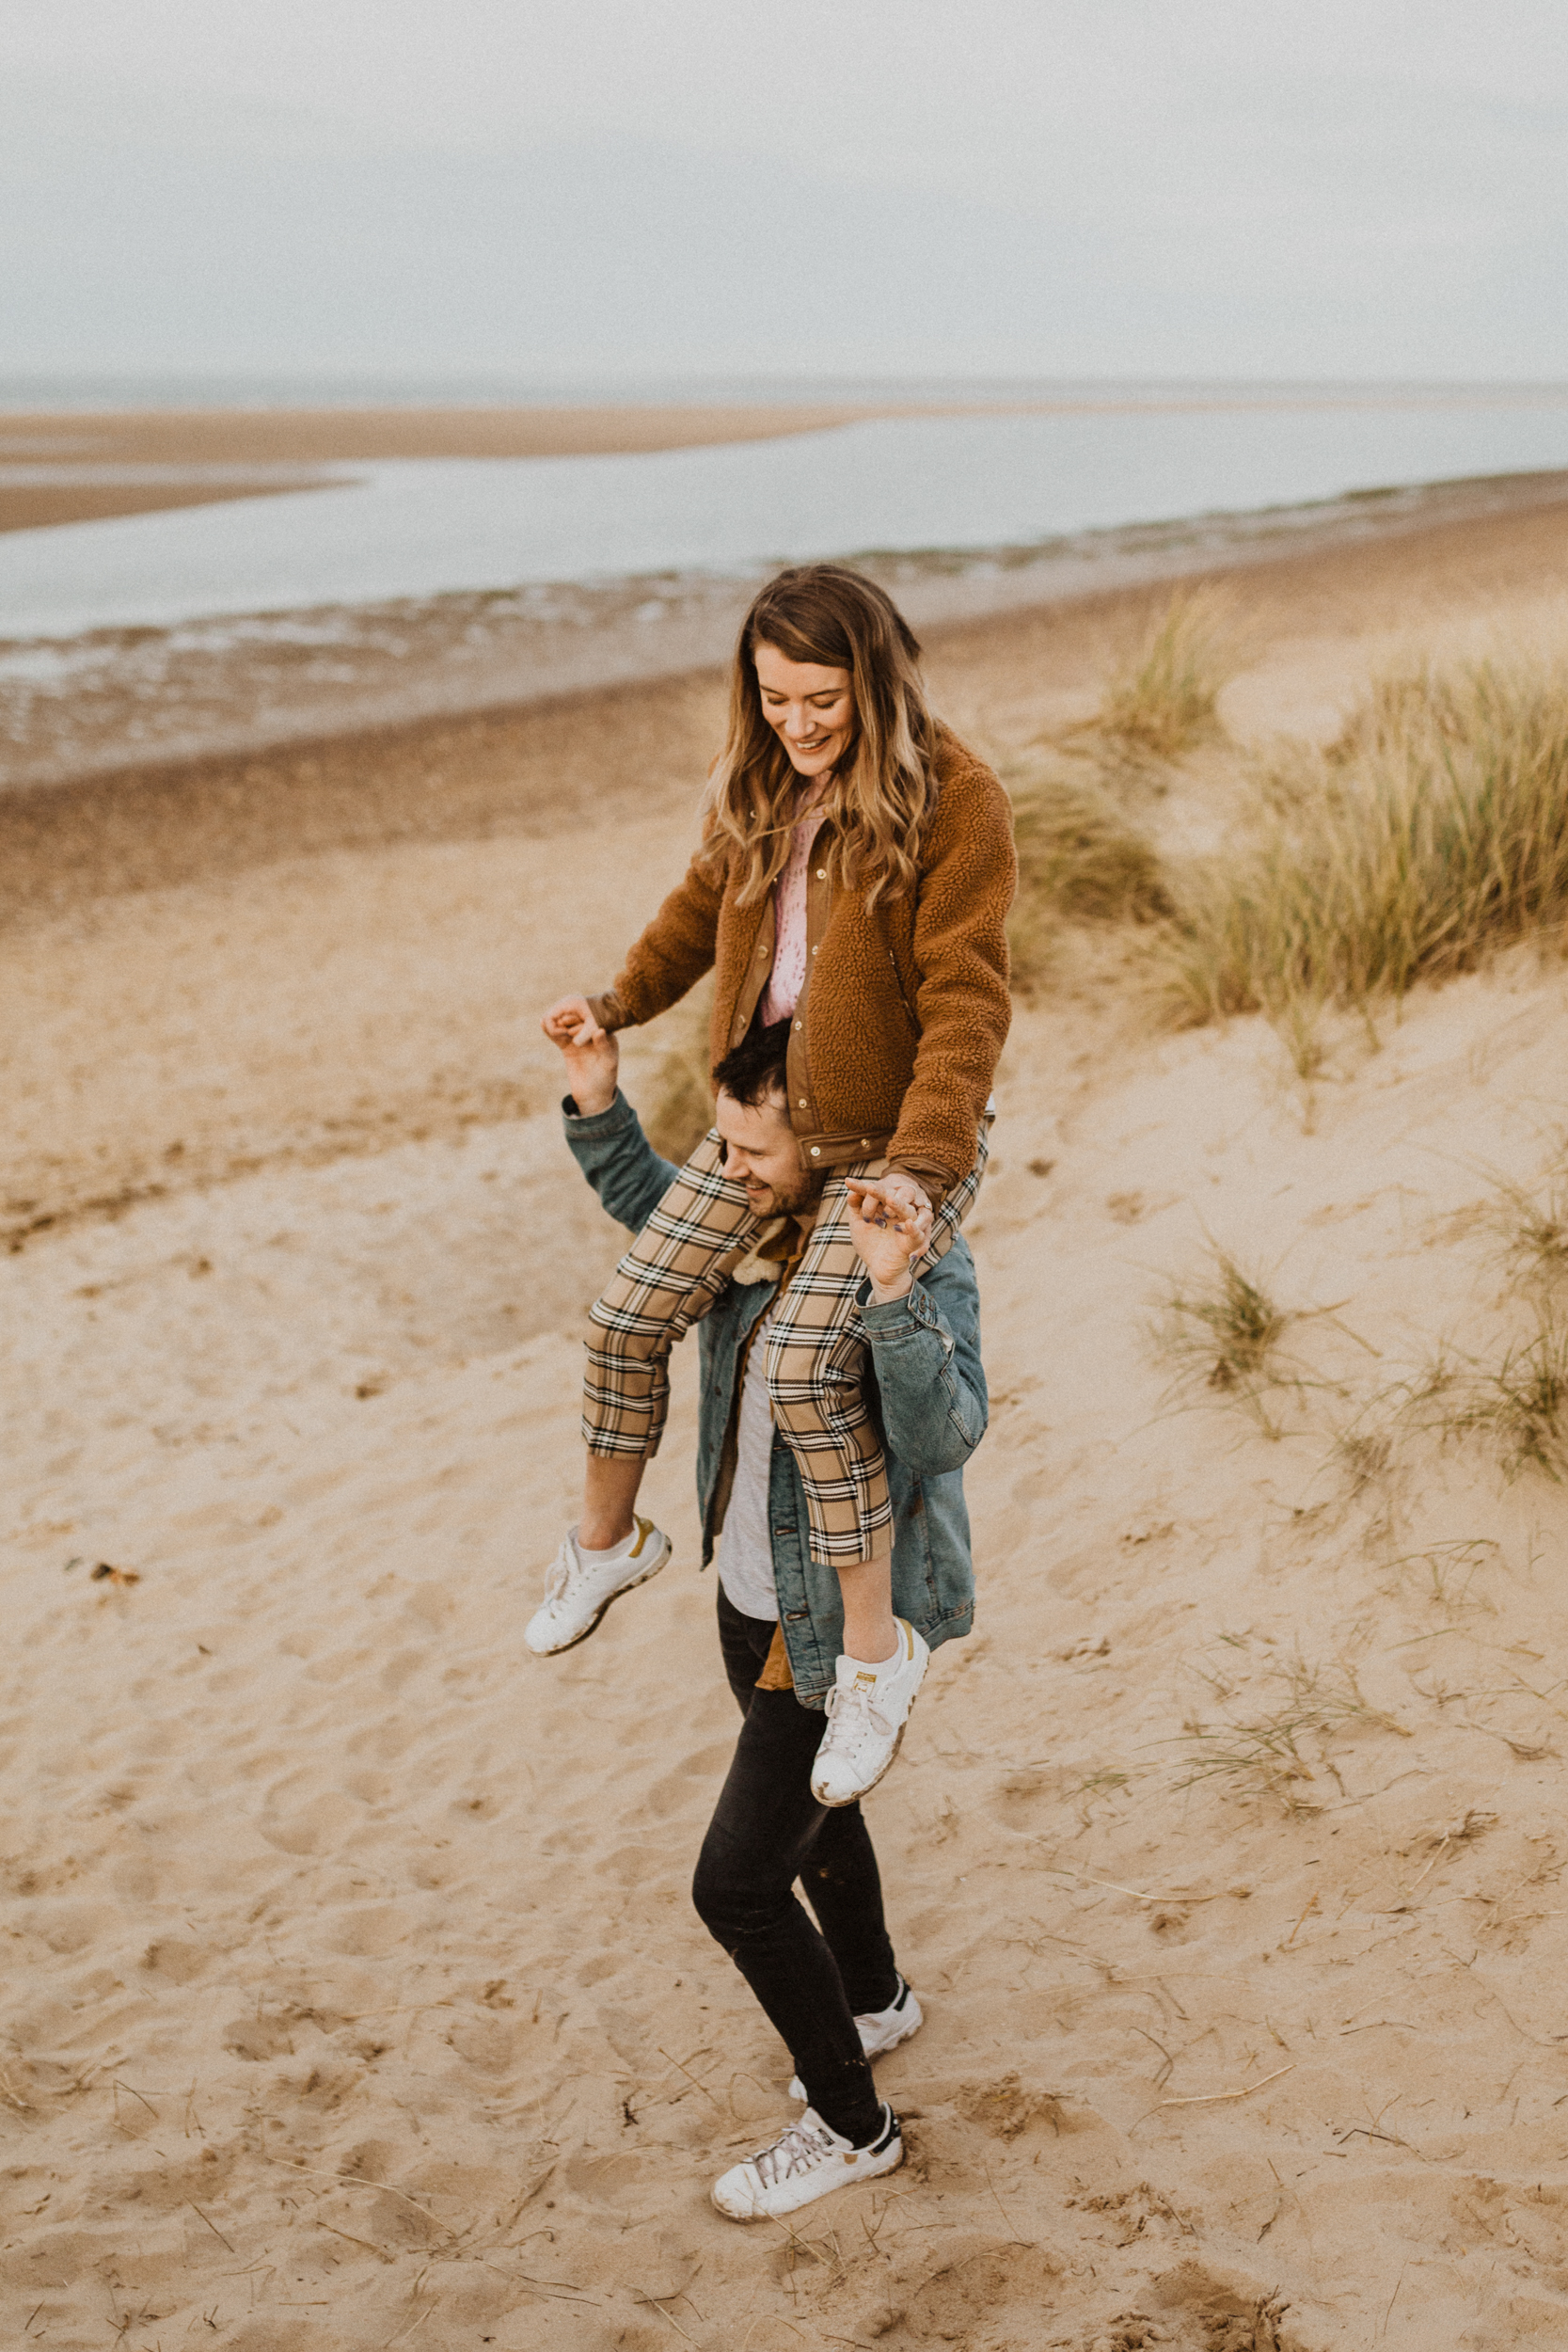 Claire-Liam-Beach-Coastal-Engagement-Session-Norfolk-Darina-Stoda-Photography-15.jpg